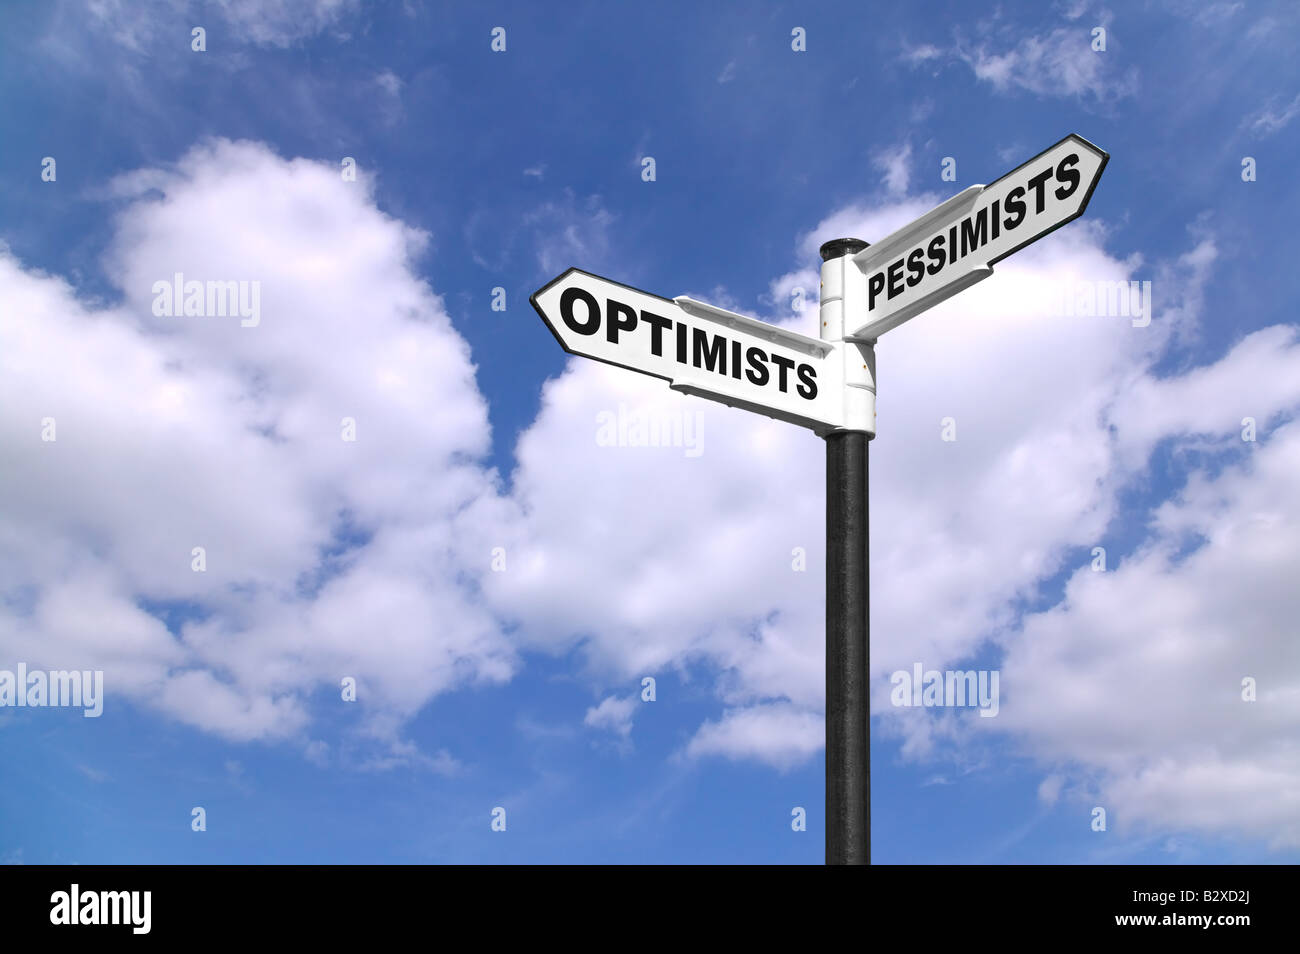 Concept image of a signpost for Optimists and Pessimists - Stock Image